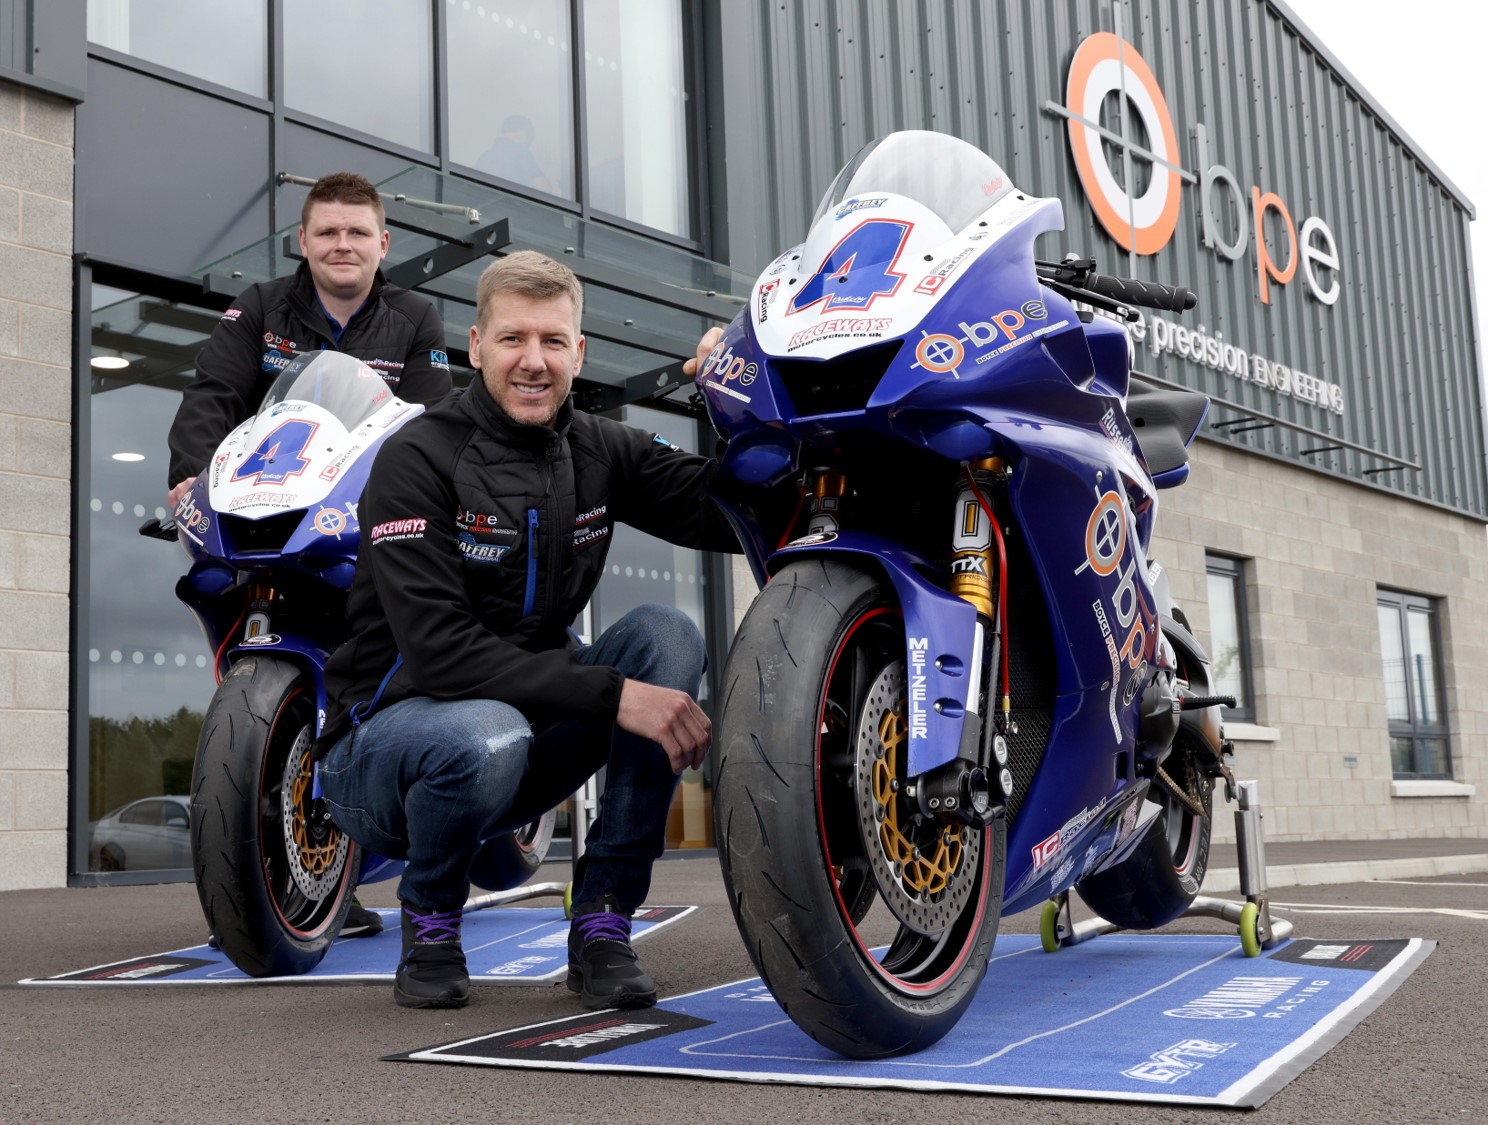 Hutchinson Eyeing TT Success With New Outfit